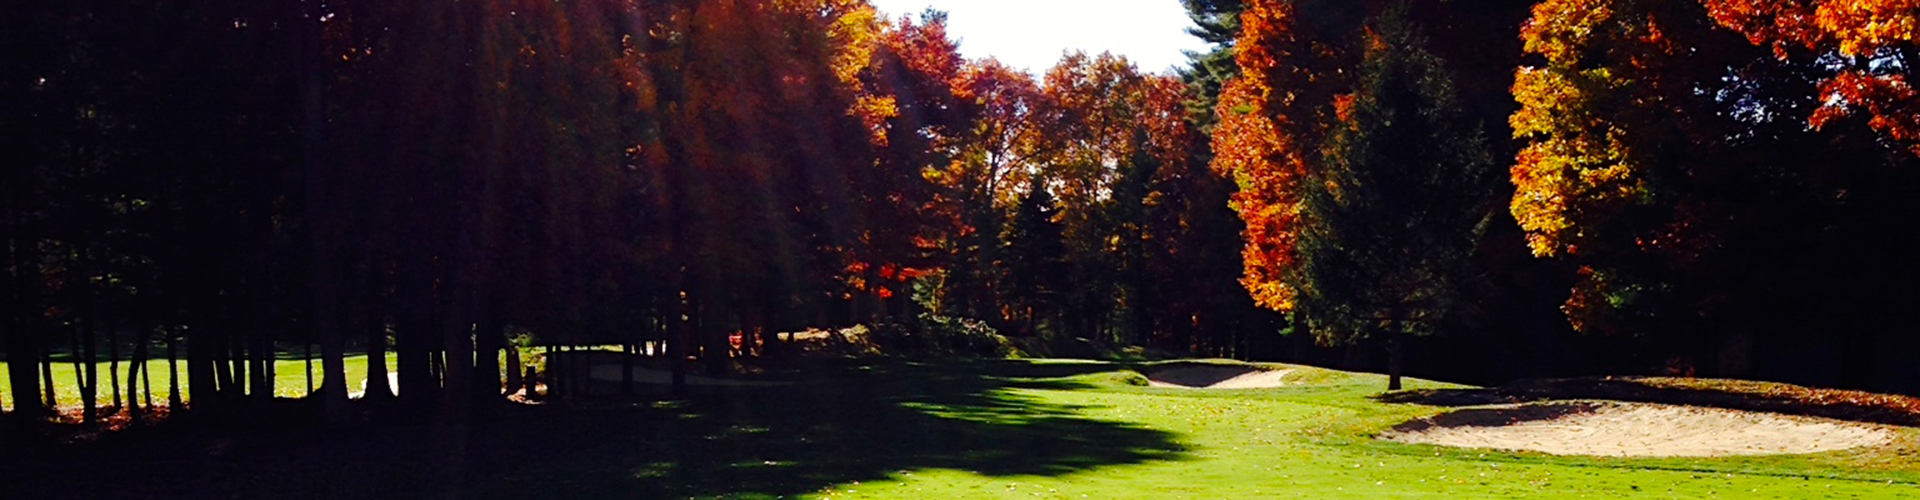 Fall scene at the course at Butternut Farm Golf Club in Stow, Massachusetts